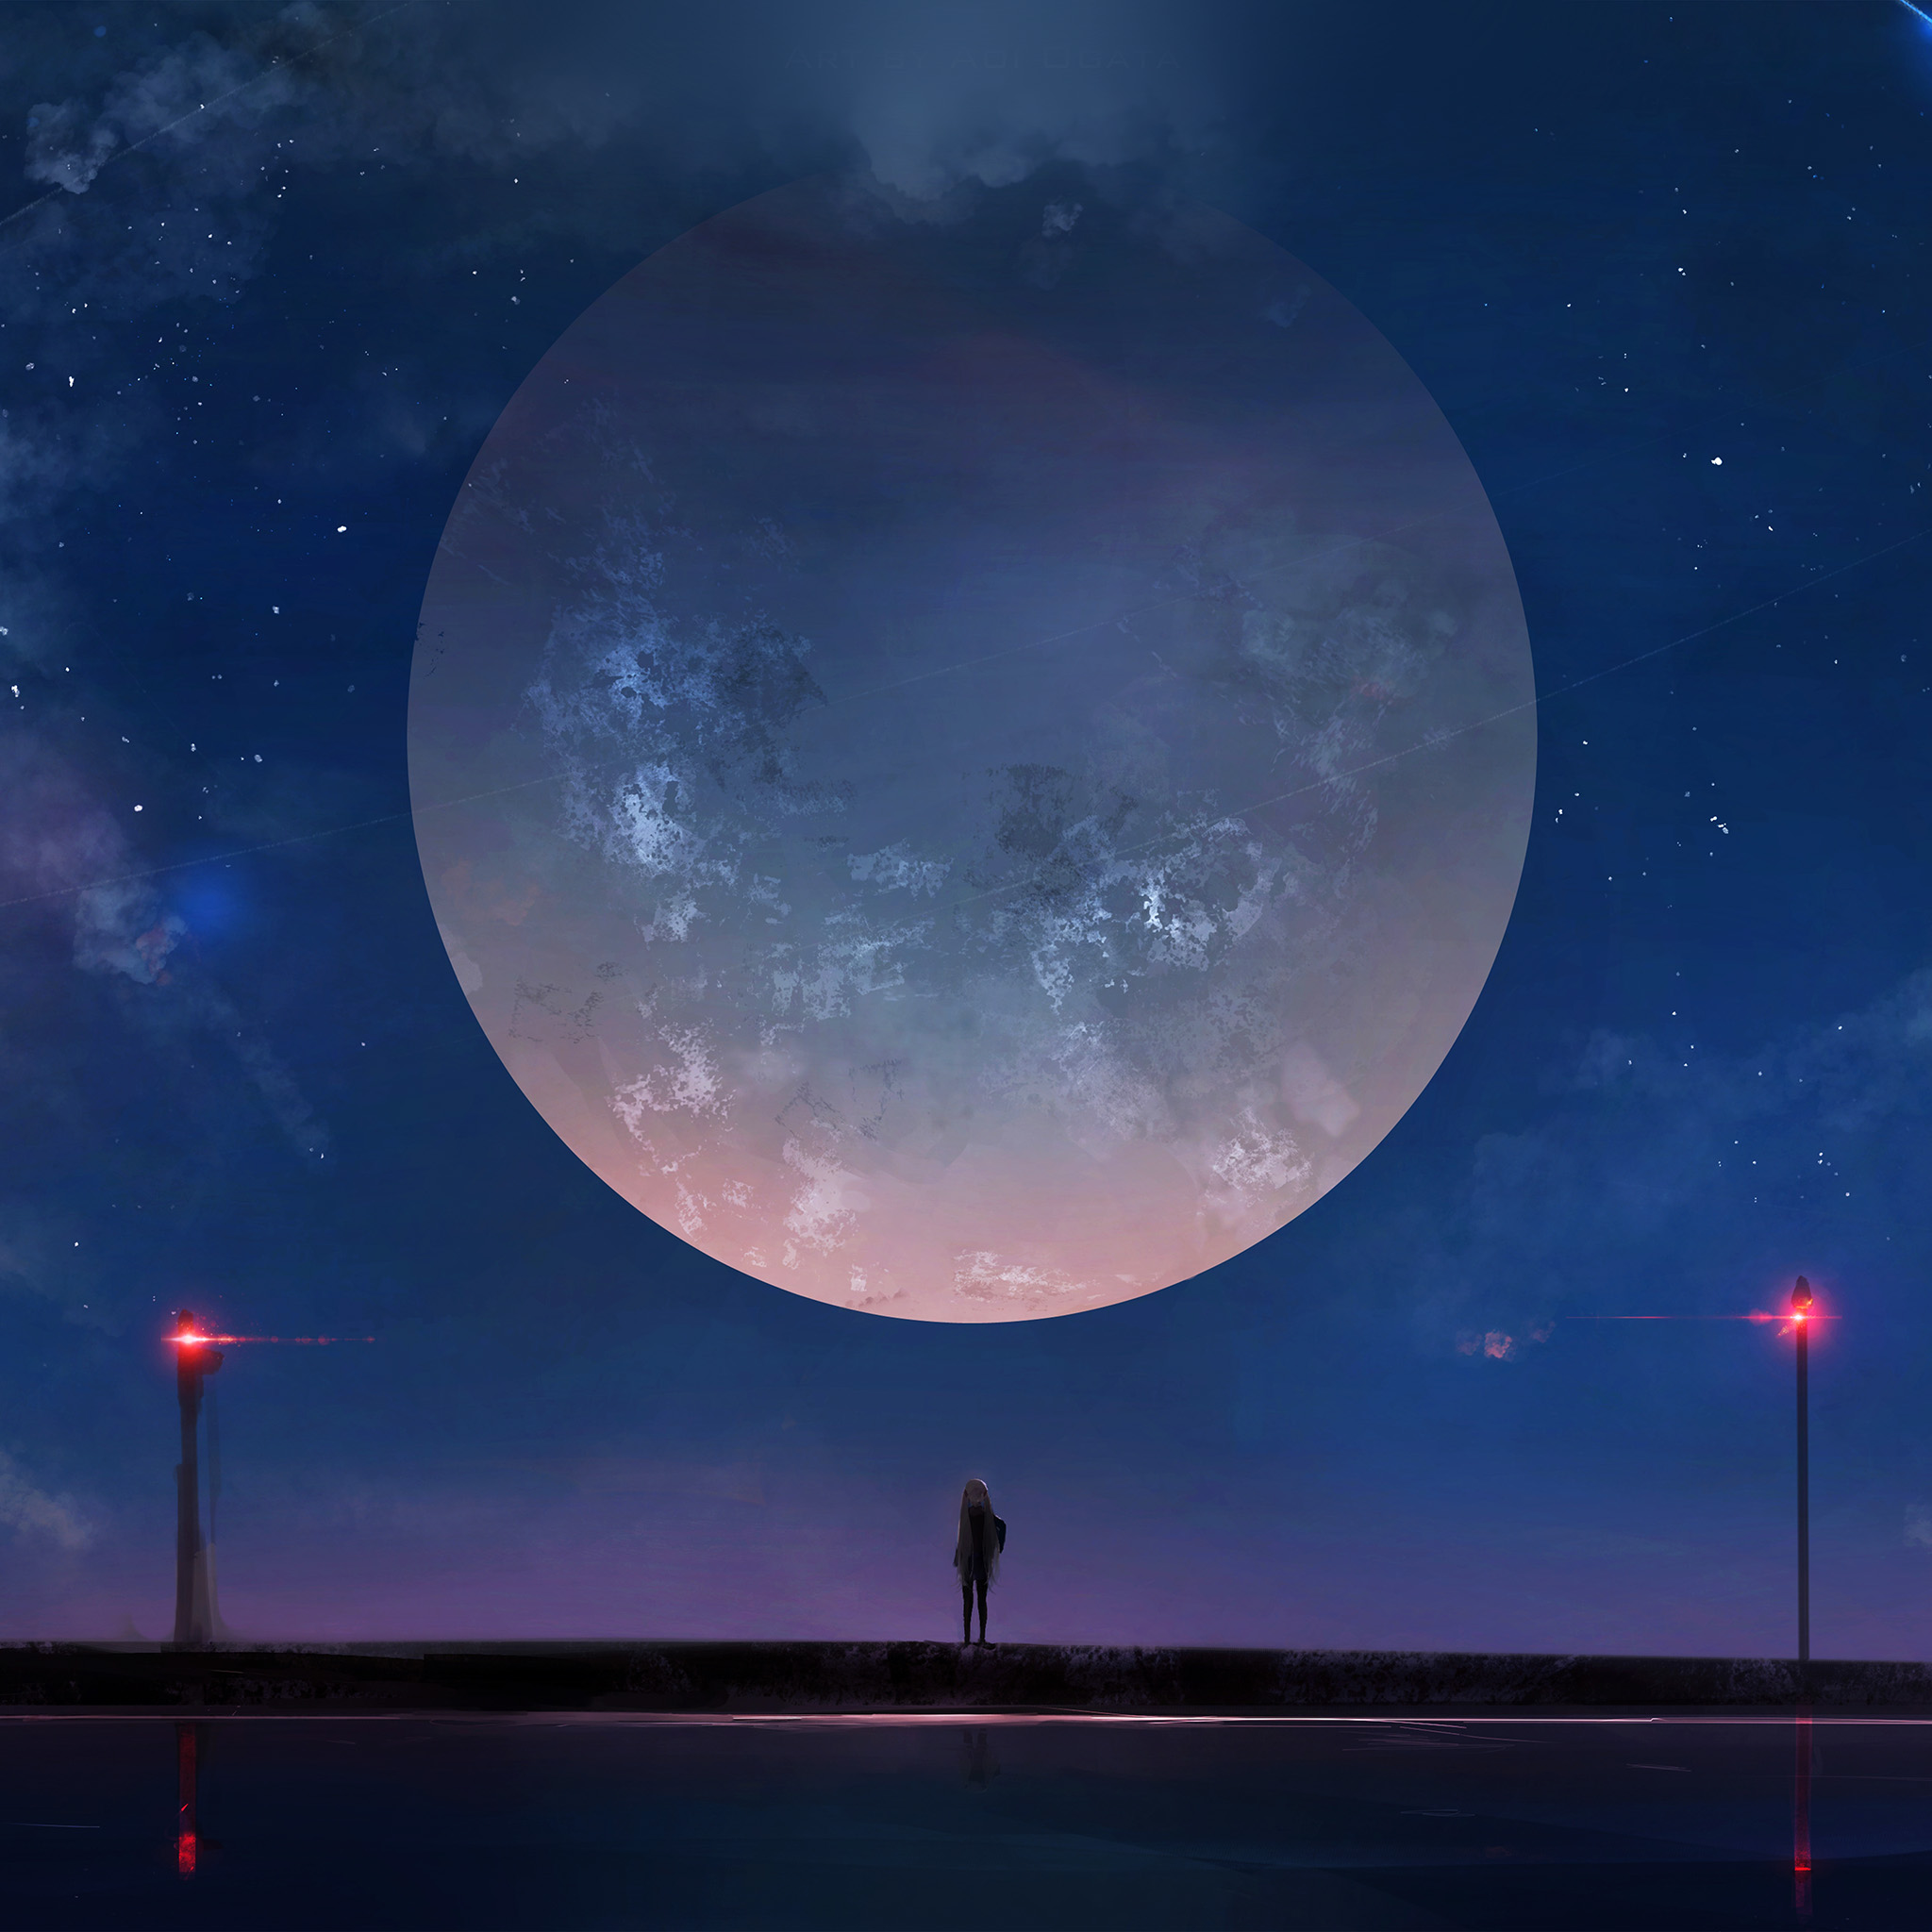 Note 8 Fall Wallpapers Papers Co Android Wallpaper Bc62 Moon Anime Night Art